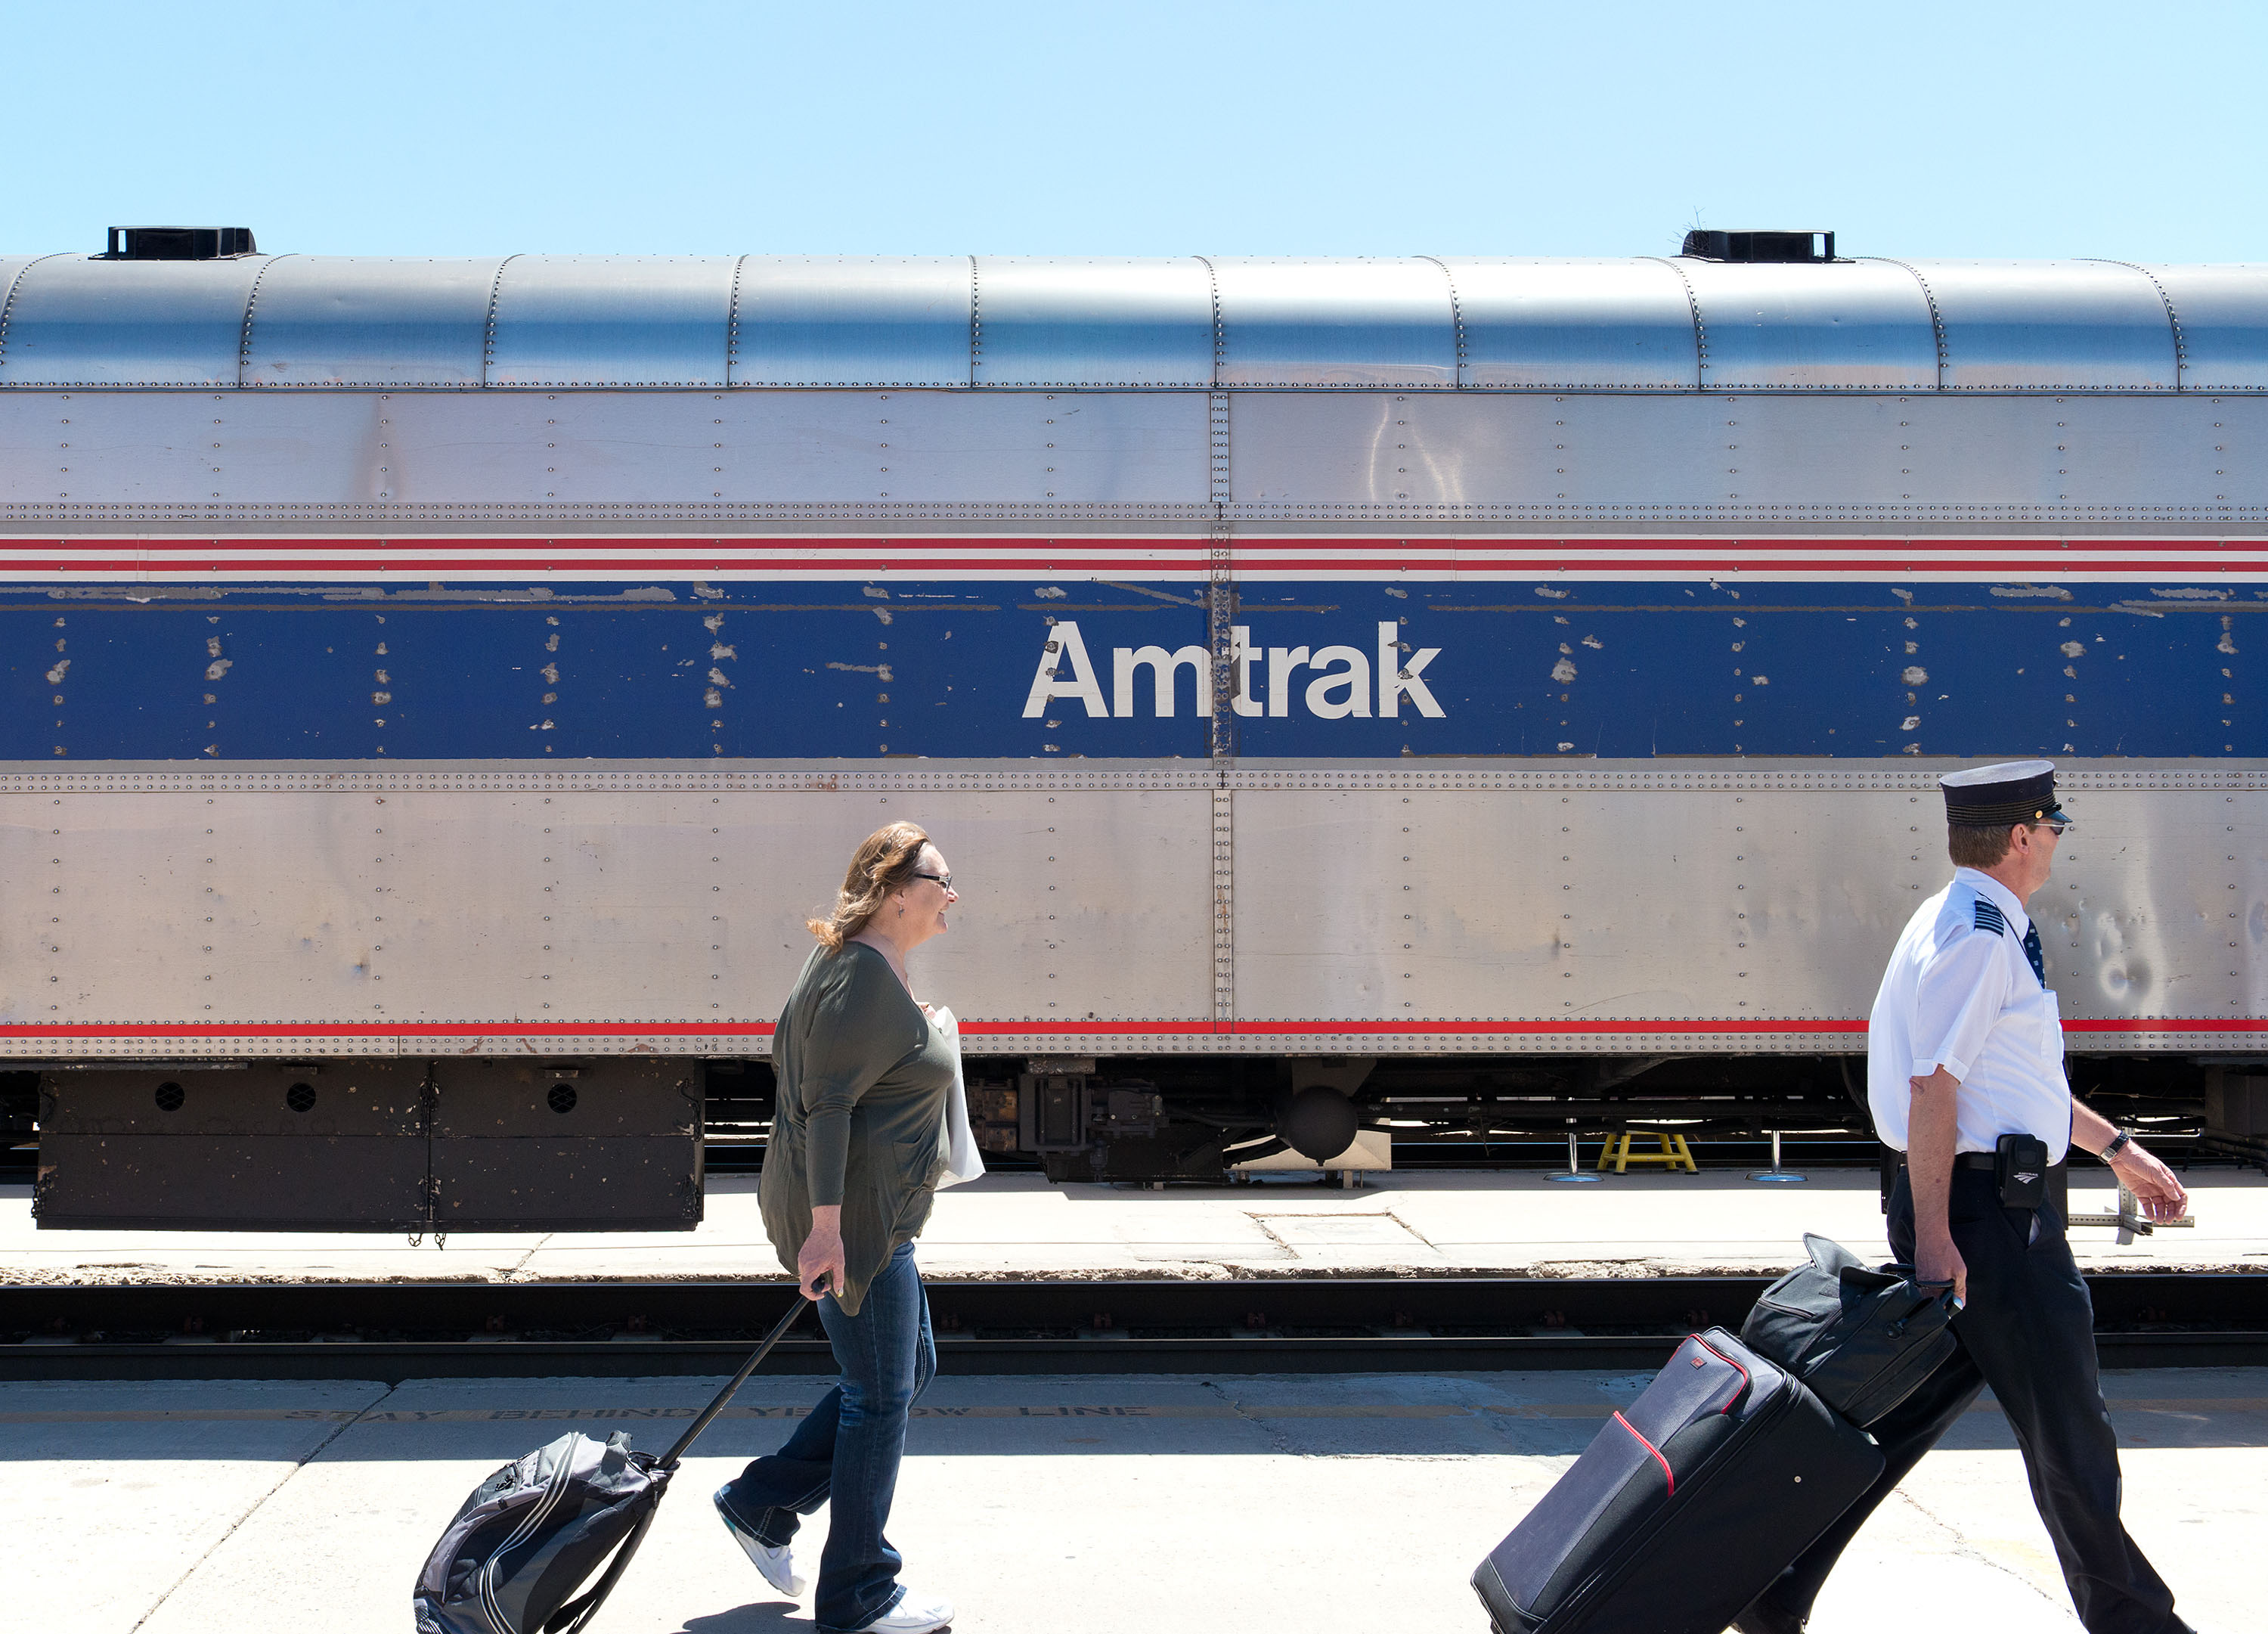 Arriving Amtrak passengers are seen walking towards the terminal during Amtrak's National Train Day on May 10, 2014 in Albuquerque, N.M.